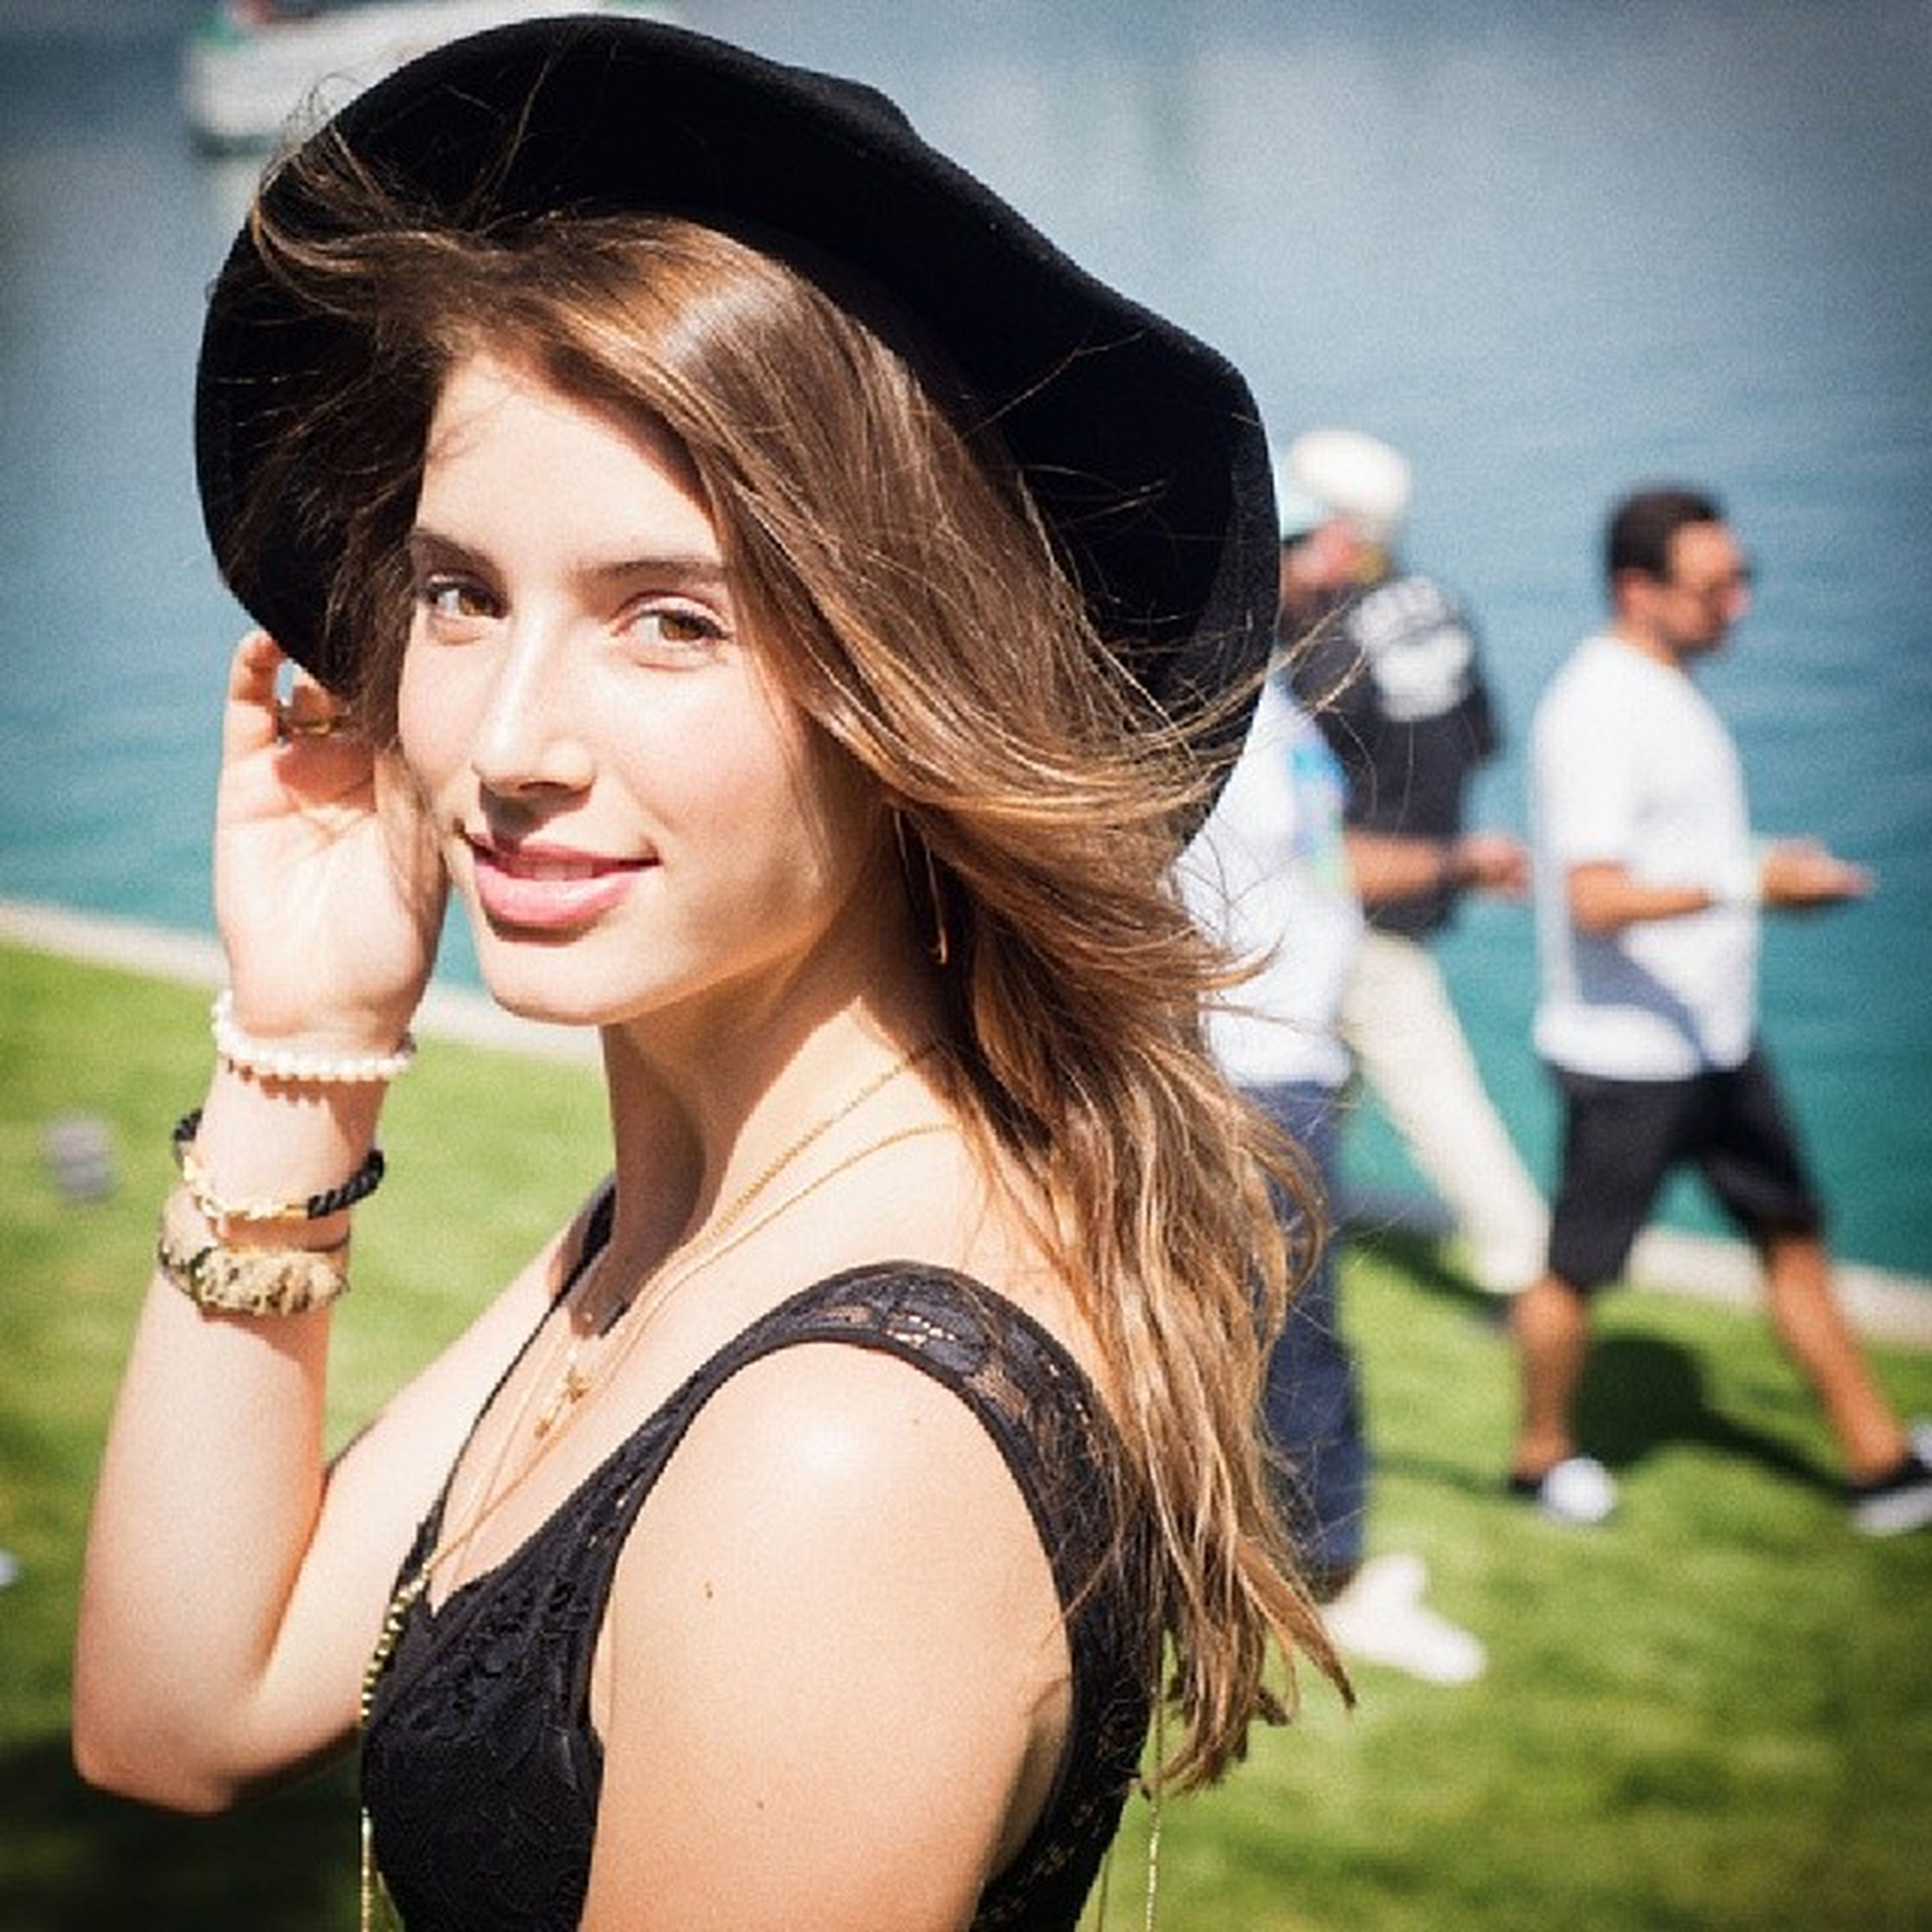 young women, lifestyles, young adult, leisure activity, focus on foreground, long hair, person, smiling, happiness, portrait, looking at camera, casual clothing, front view, brown hair, headshot, incidental people